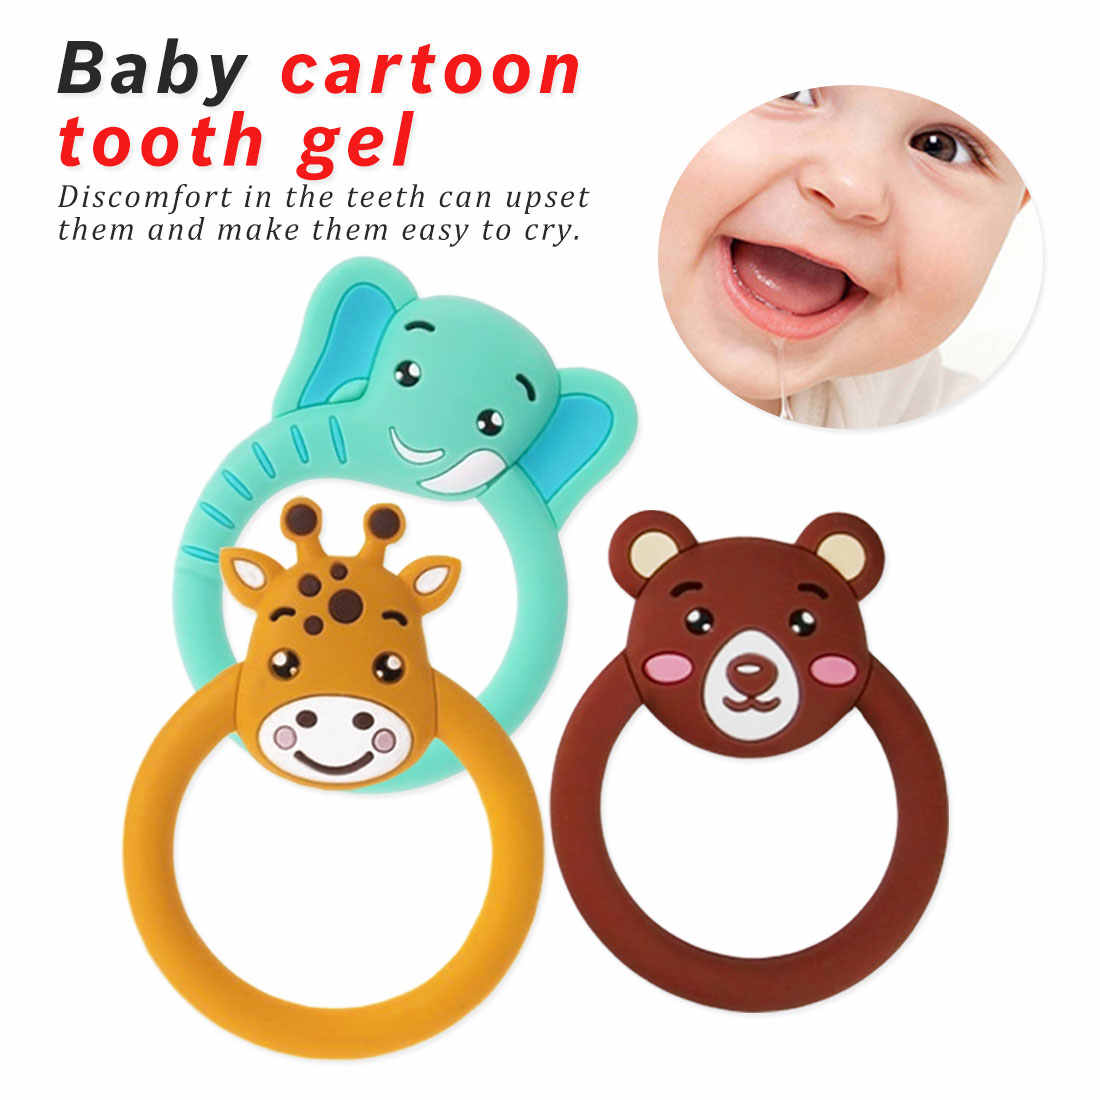 Giraffe Elephant Baby silicone Teether Pacifier Cartoon Teething Nursing Silicone BPA Free Necklace Toys